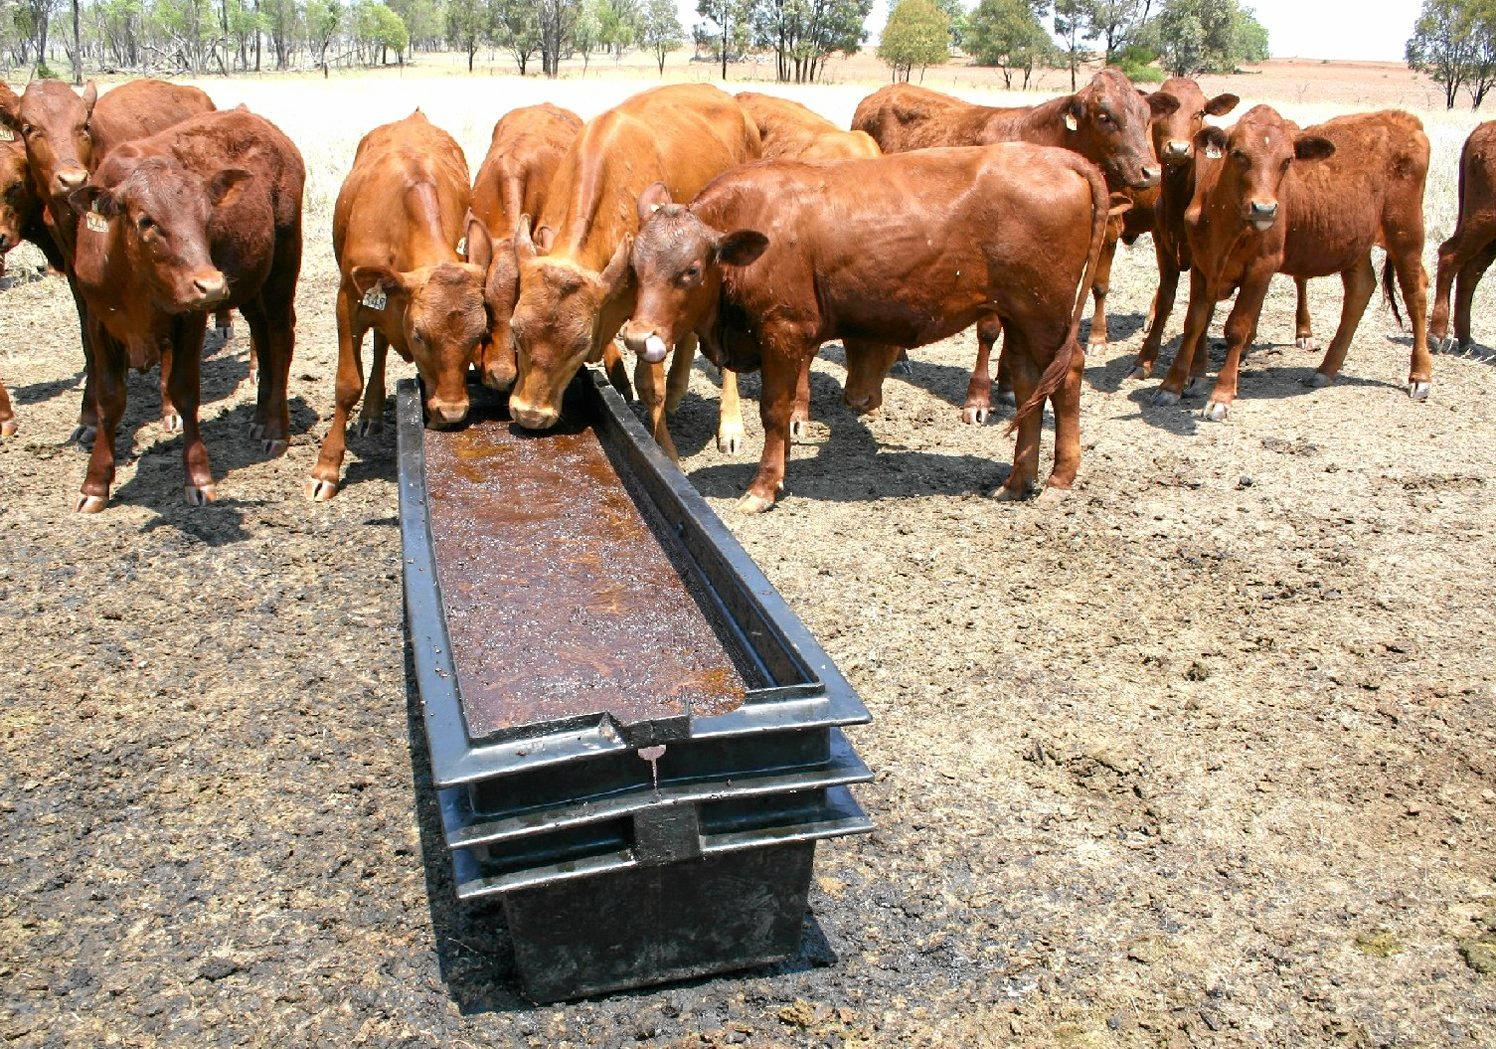 Central Queensland heifers being supplemented with a fortified mix of molasses and cottonseed meal fed in an open trough to fill the protein and energy gap in extremely dry and nutritionally stressed post-winter pastures.